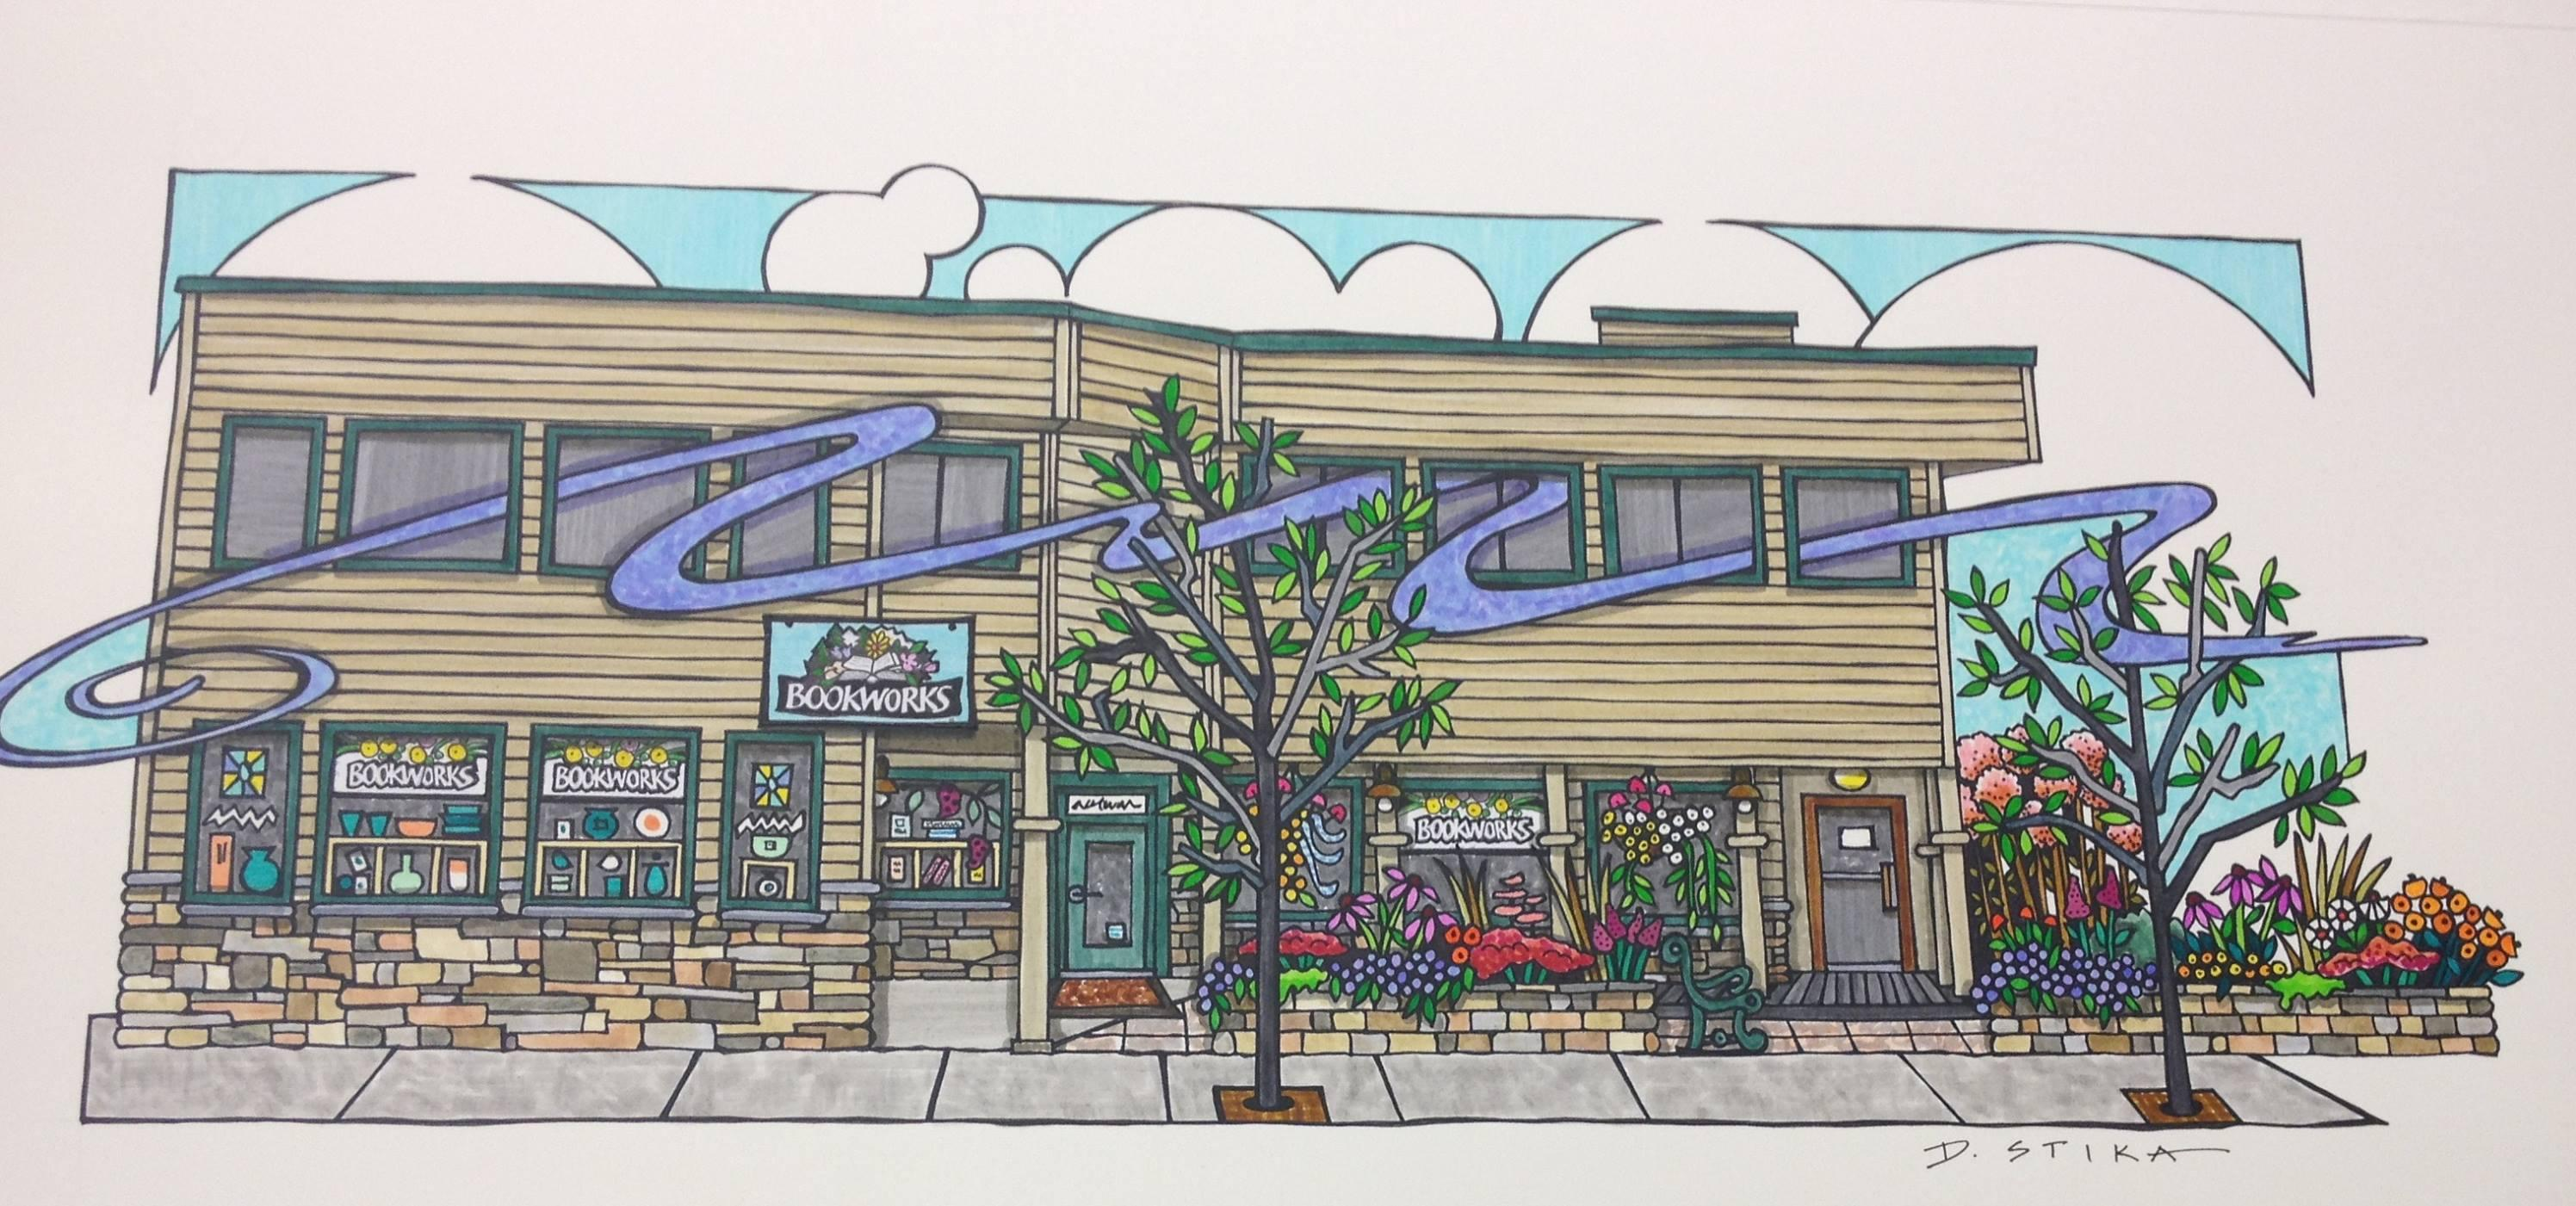 Drawing of Bookworks by Deb Stika